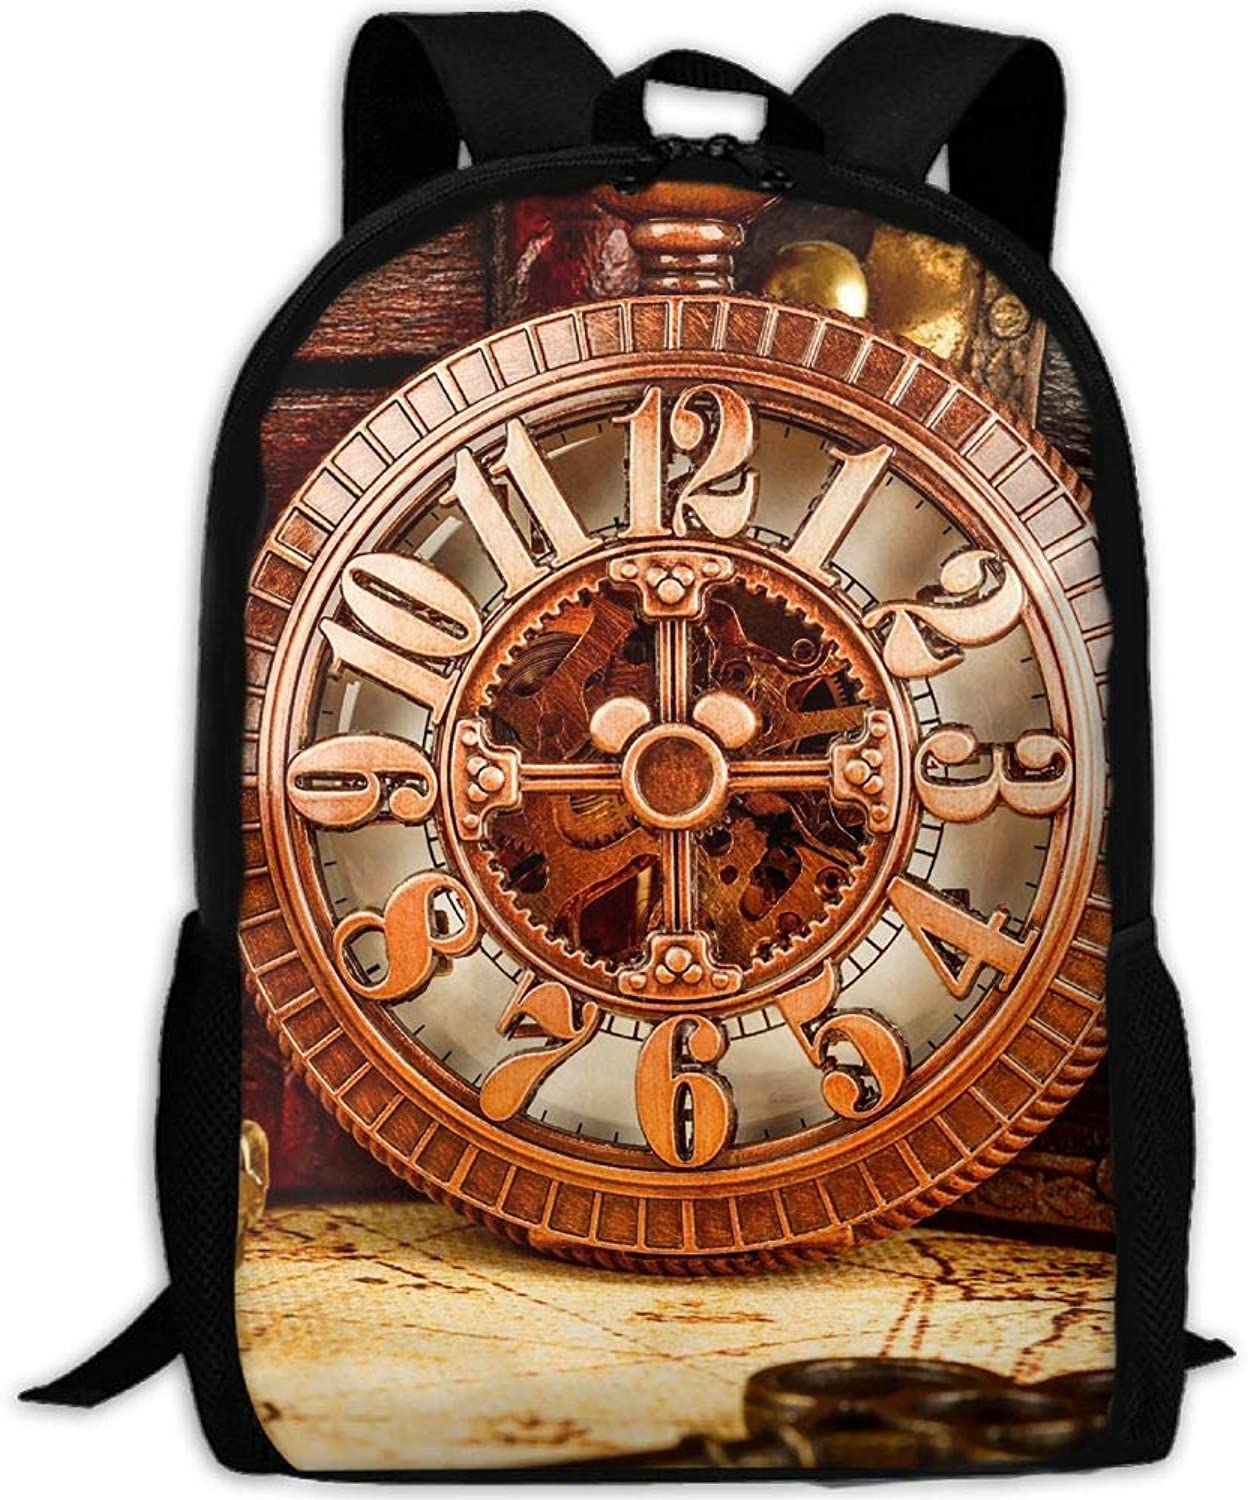 Adult Backpack Old Time Watches College Daypack Oxford Bag Unisex Business Travel Sports Bag with Adjustable Strap